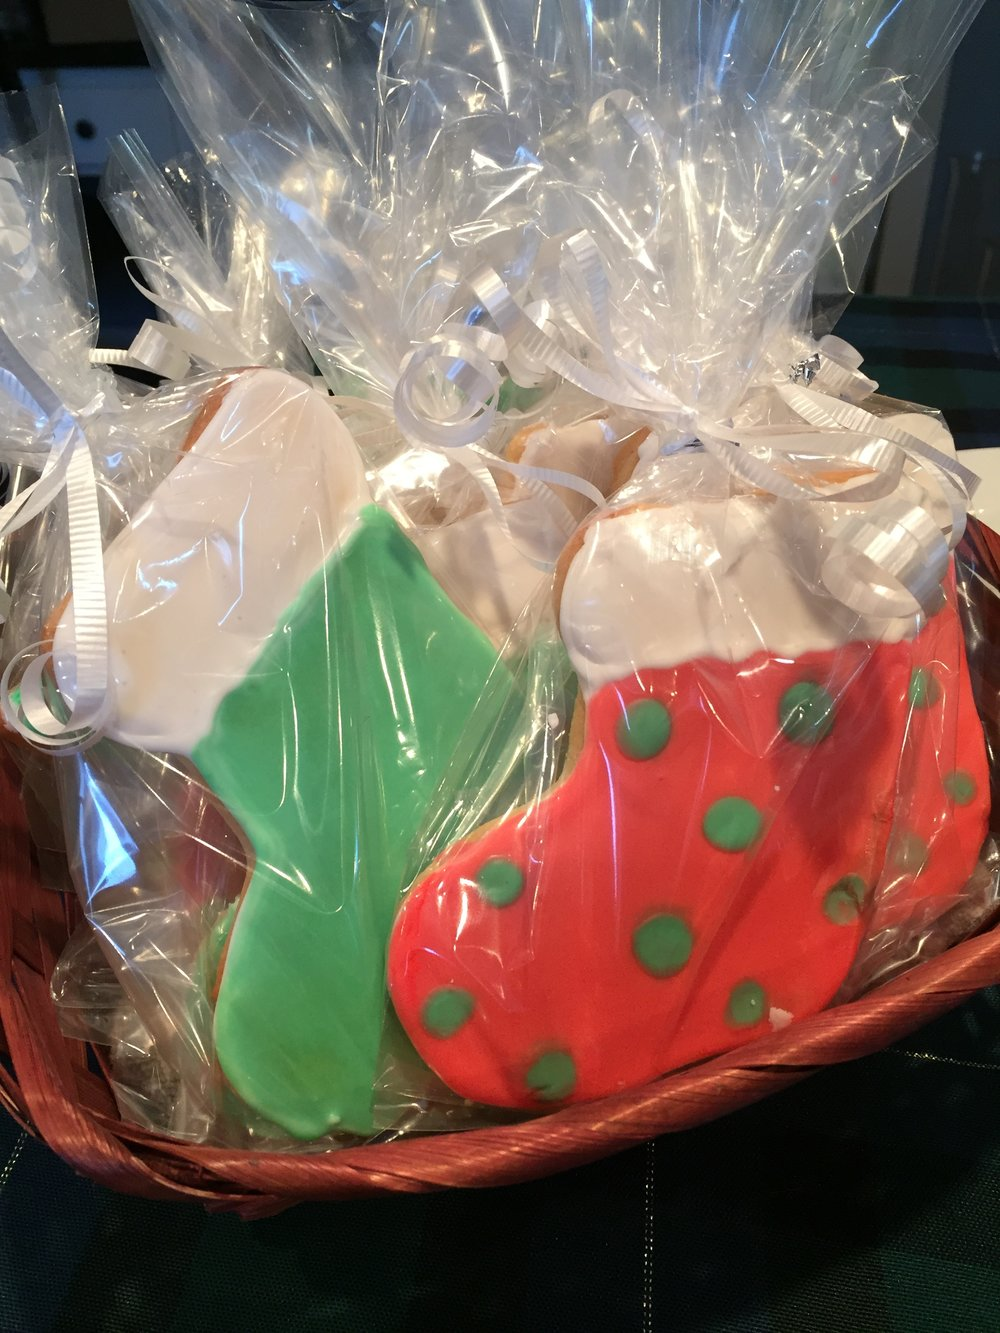 These cookies were wrapped as gifts and put in gift bags with other treats such as my sugar pecans. Other cookies were used as place settings. I piped names across the top of the stocking so that guest would know where to sit during dinner, then they had a little gift to take home or eat as part of their dessert.